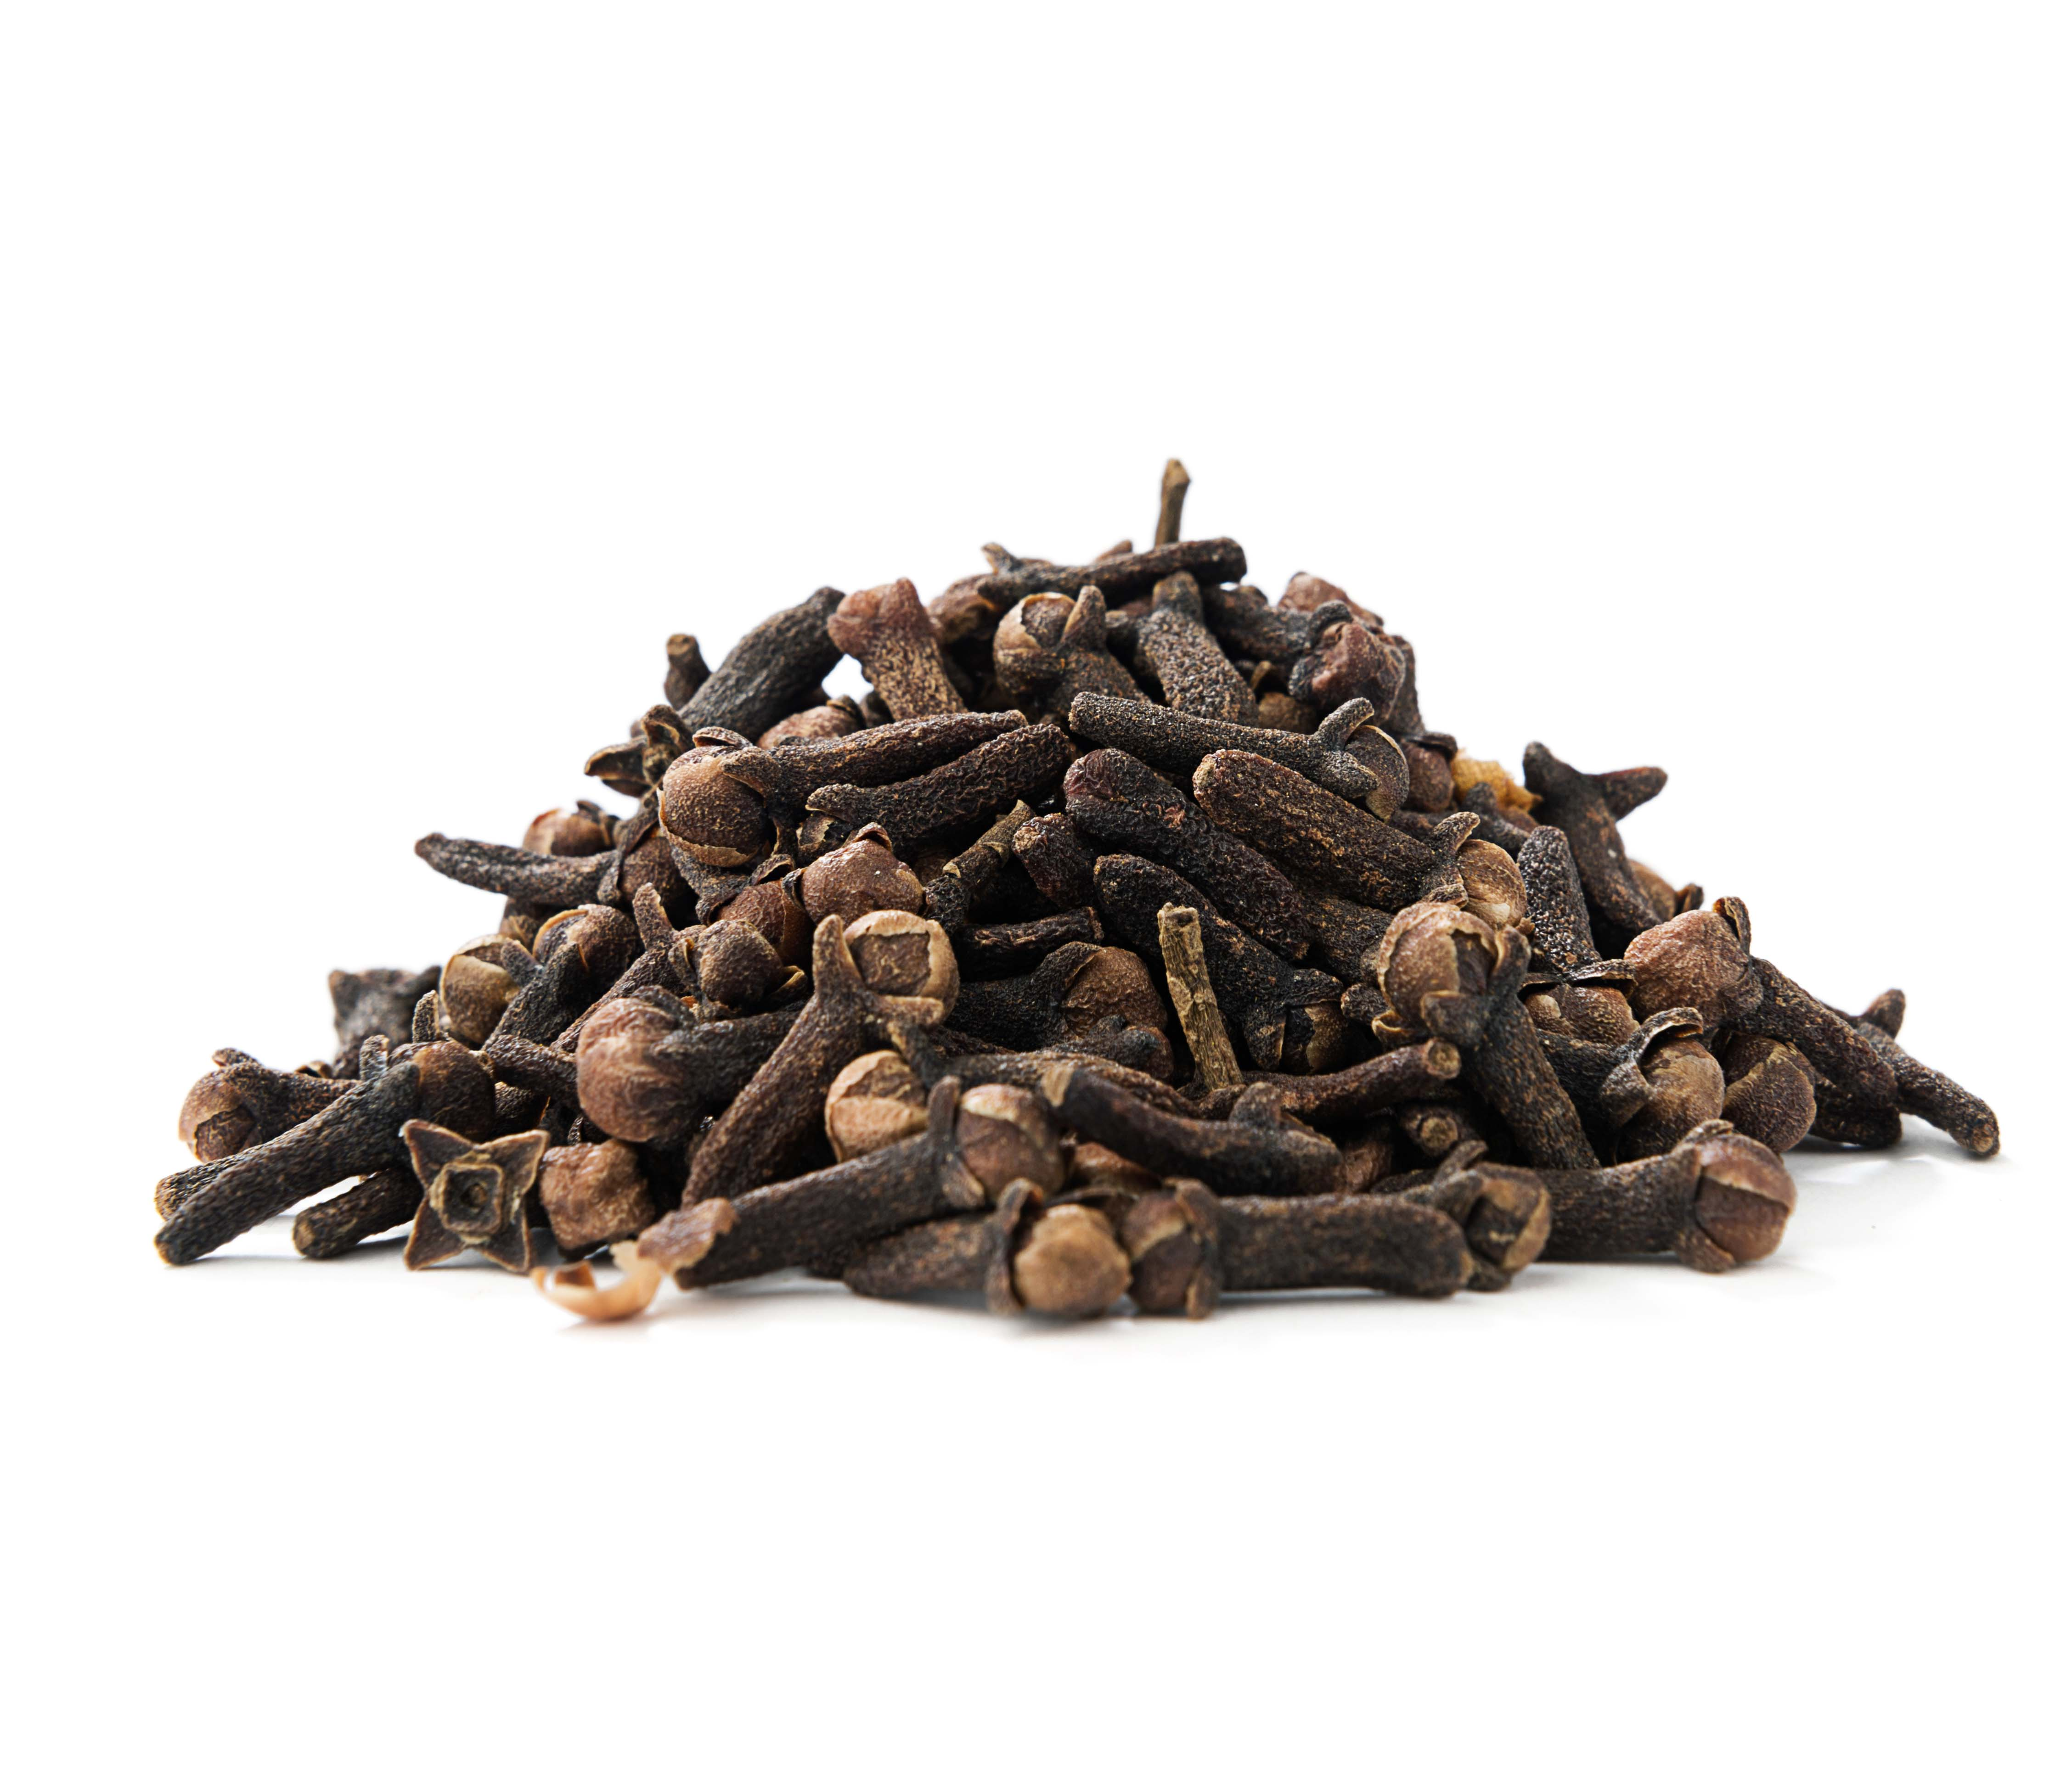 Clove Bud Essential Oil Certified Organic